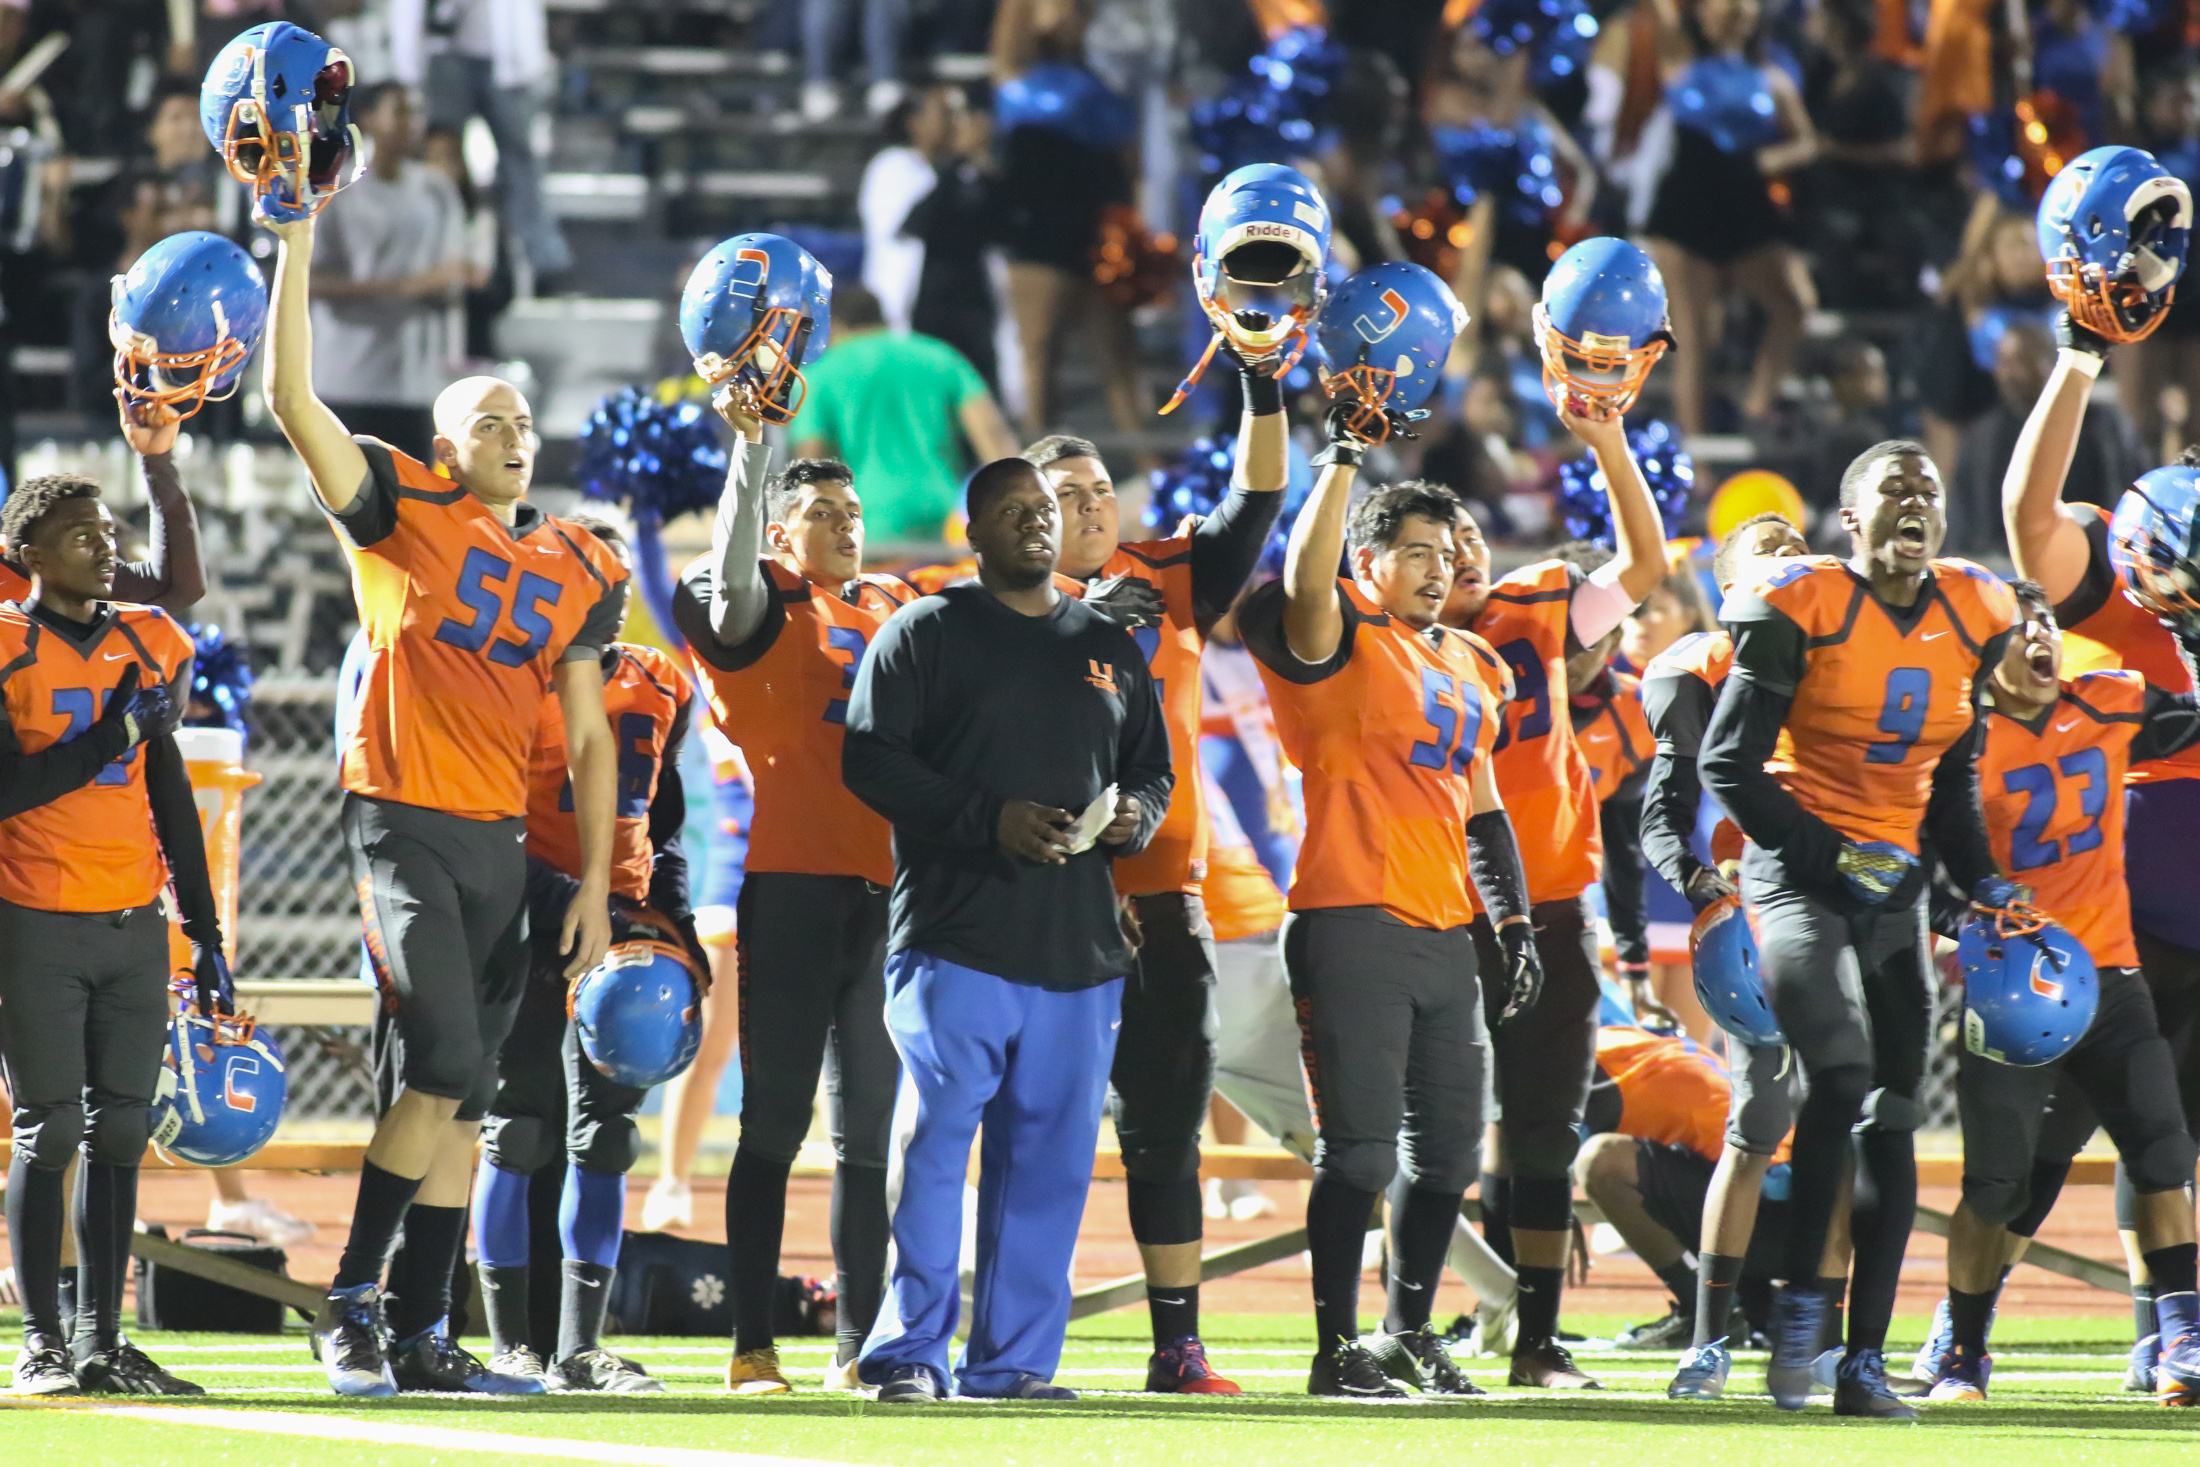 23 Oct 2015: University High School during the end of National Anthem during Homecoming game against Fairfax. (Photo by Jevone Moore / Full Image 360)